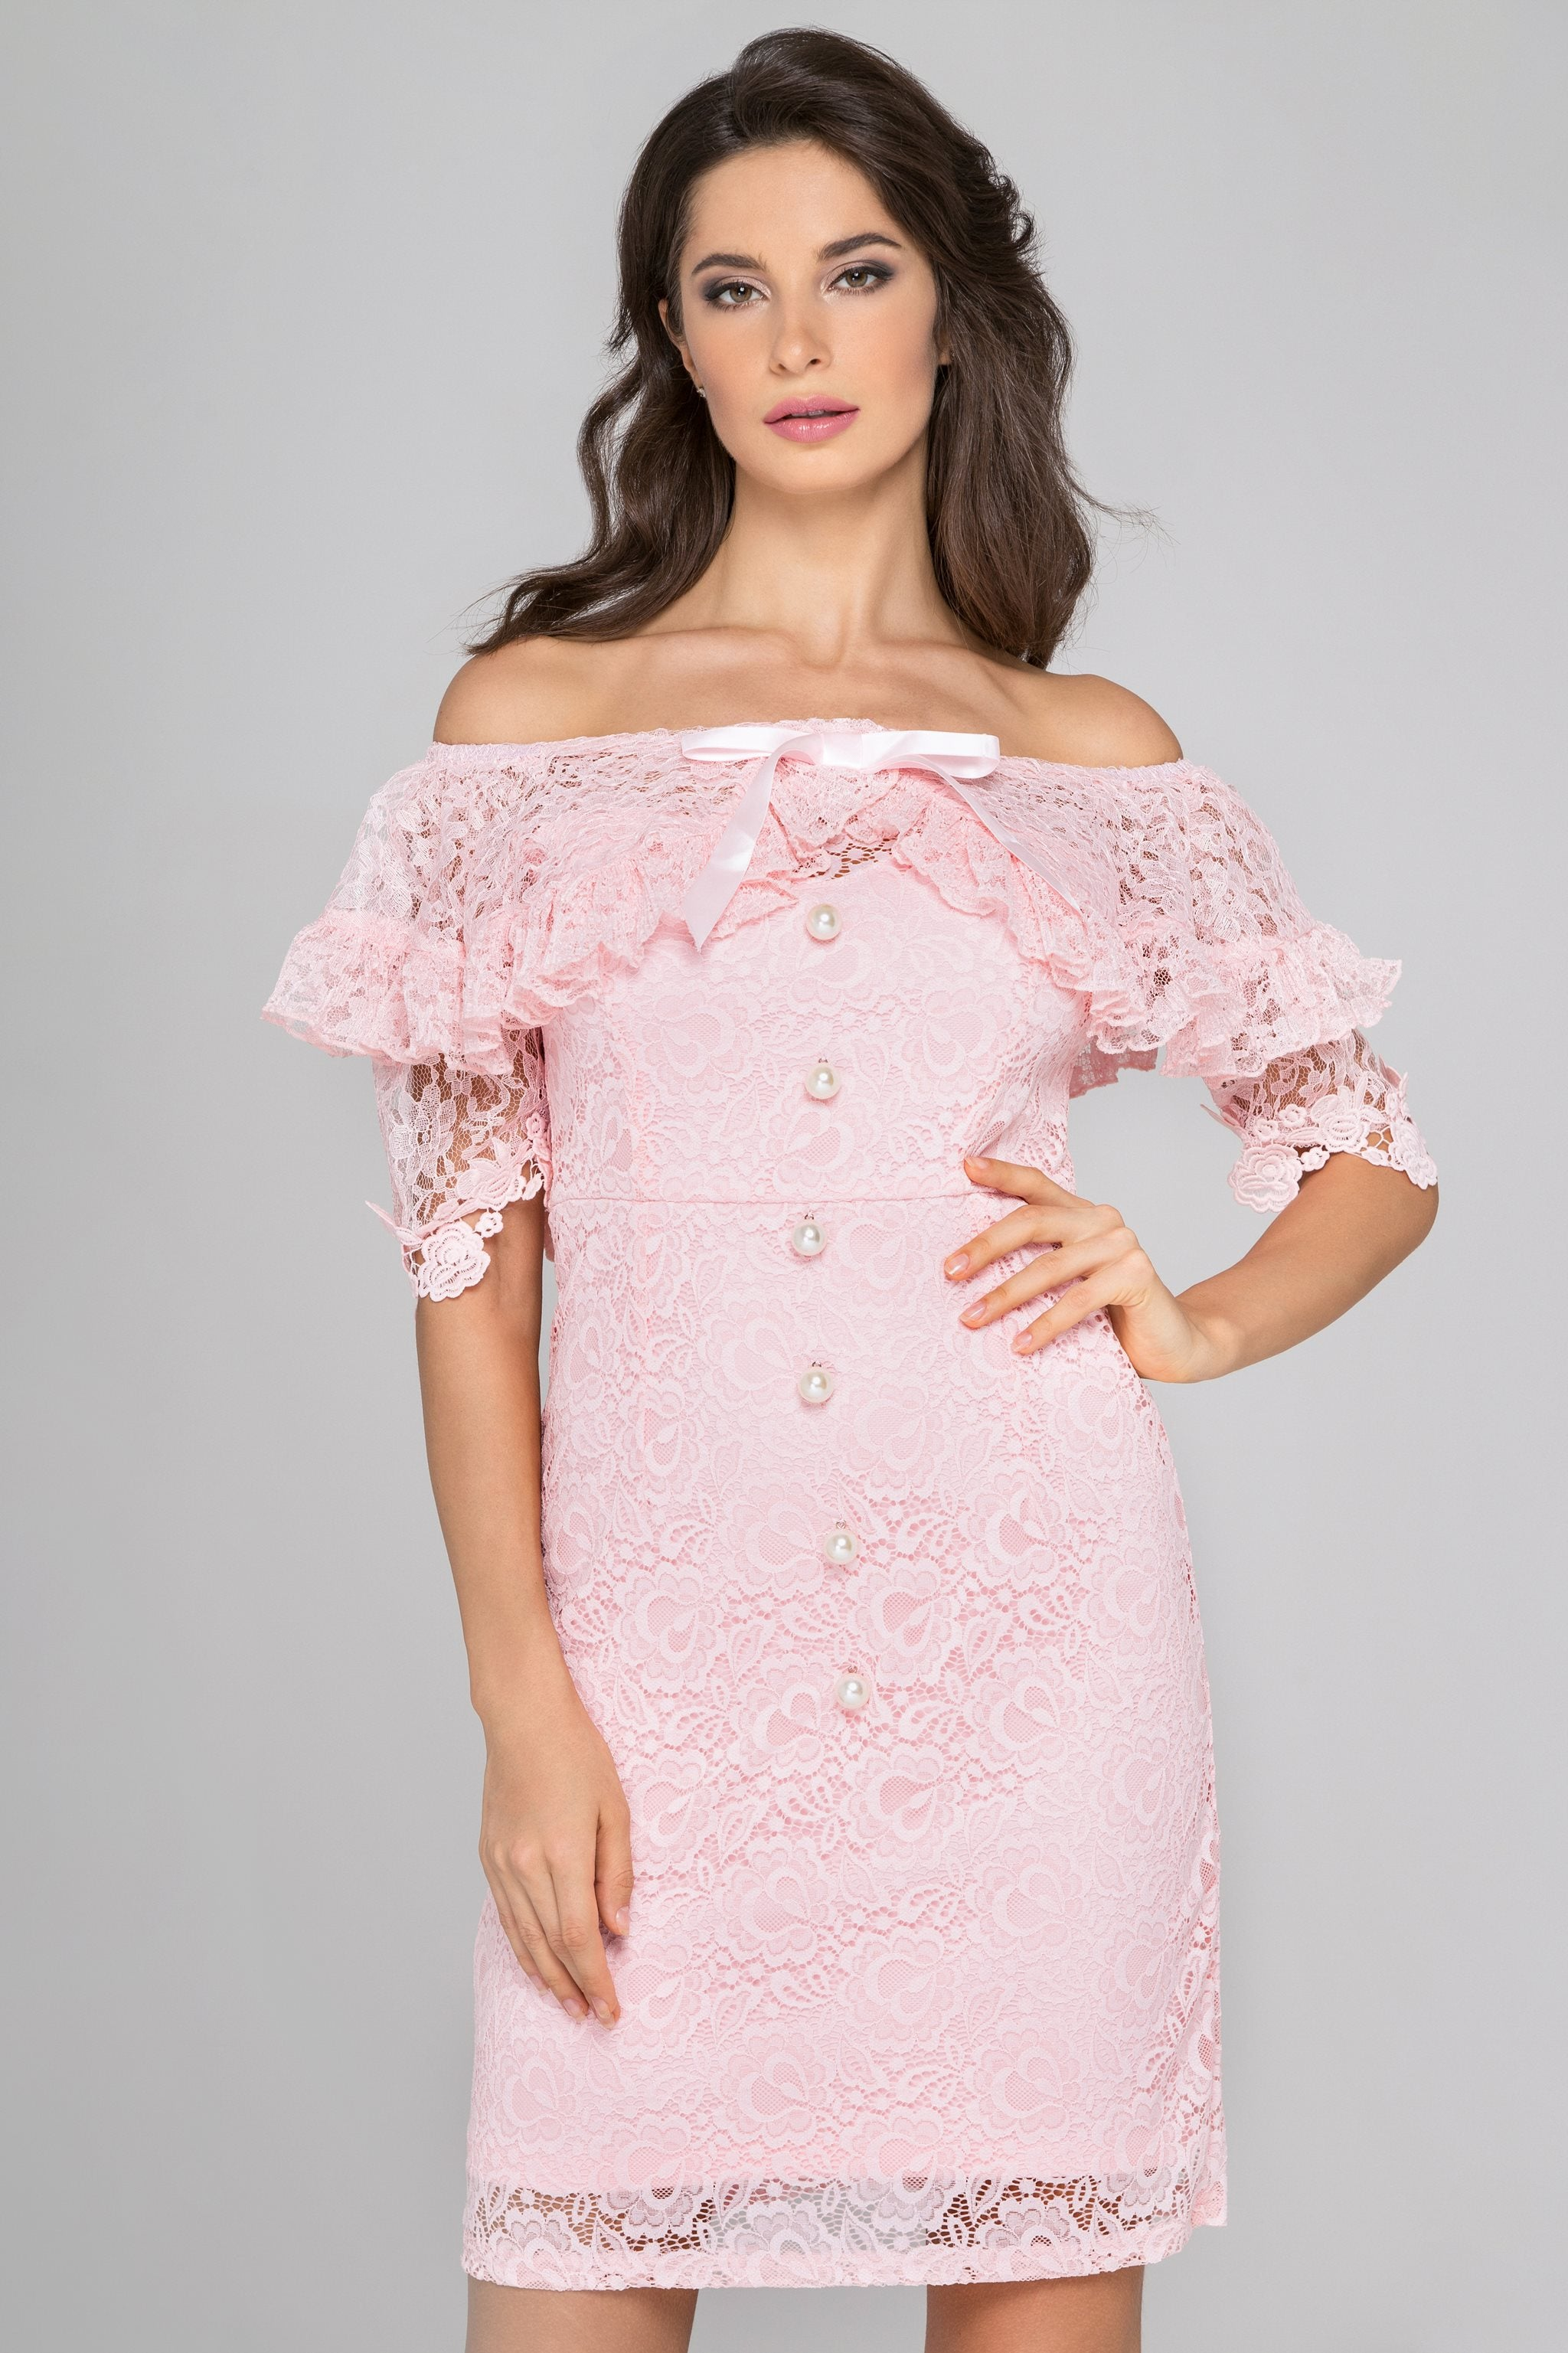 3b92cc3c7 Pink Lace Pearl Off Shoulder Mini Dress – OwnTheLooks